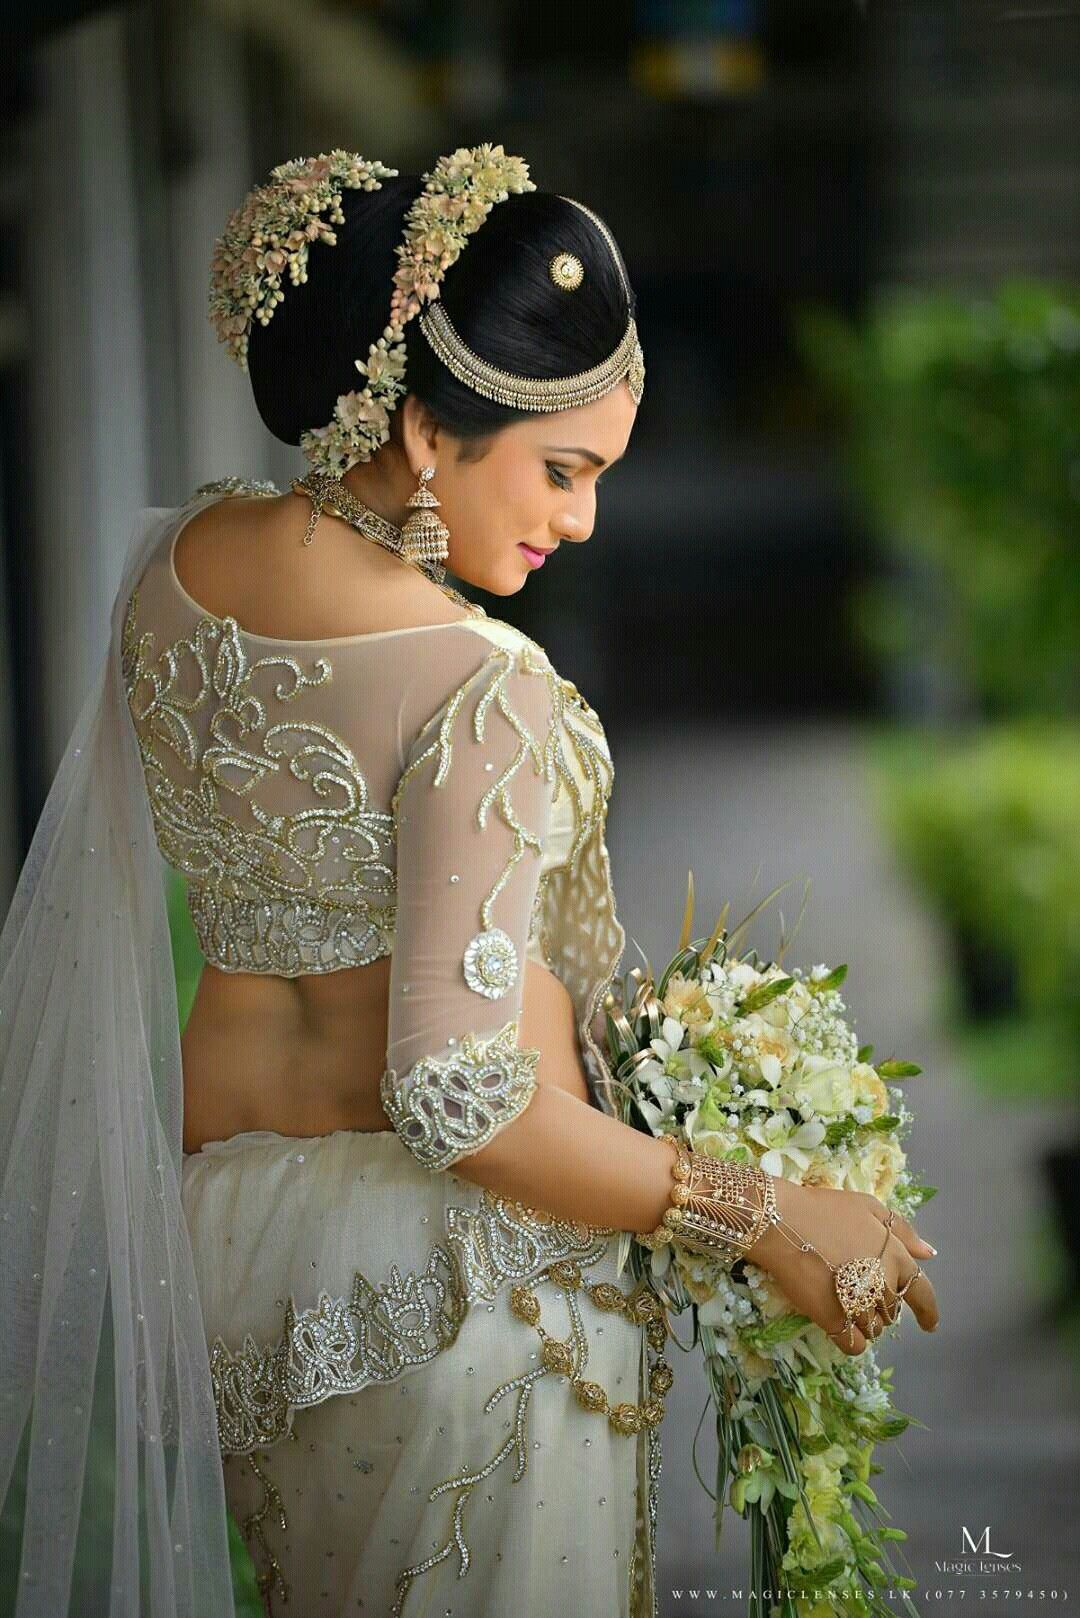 Pin By Kardaya On Brides Dress Hairstyles Hair Styles Wedding Hairstyles